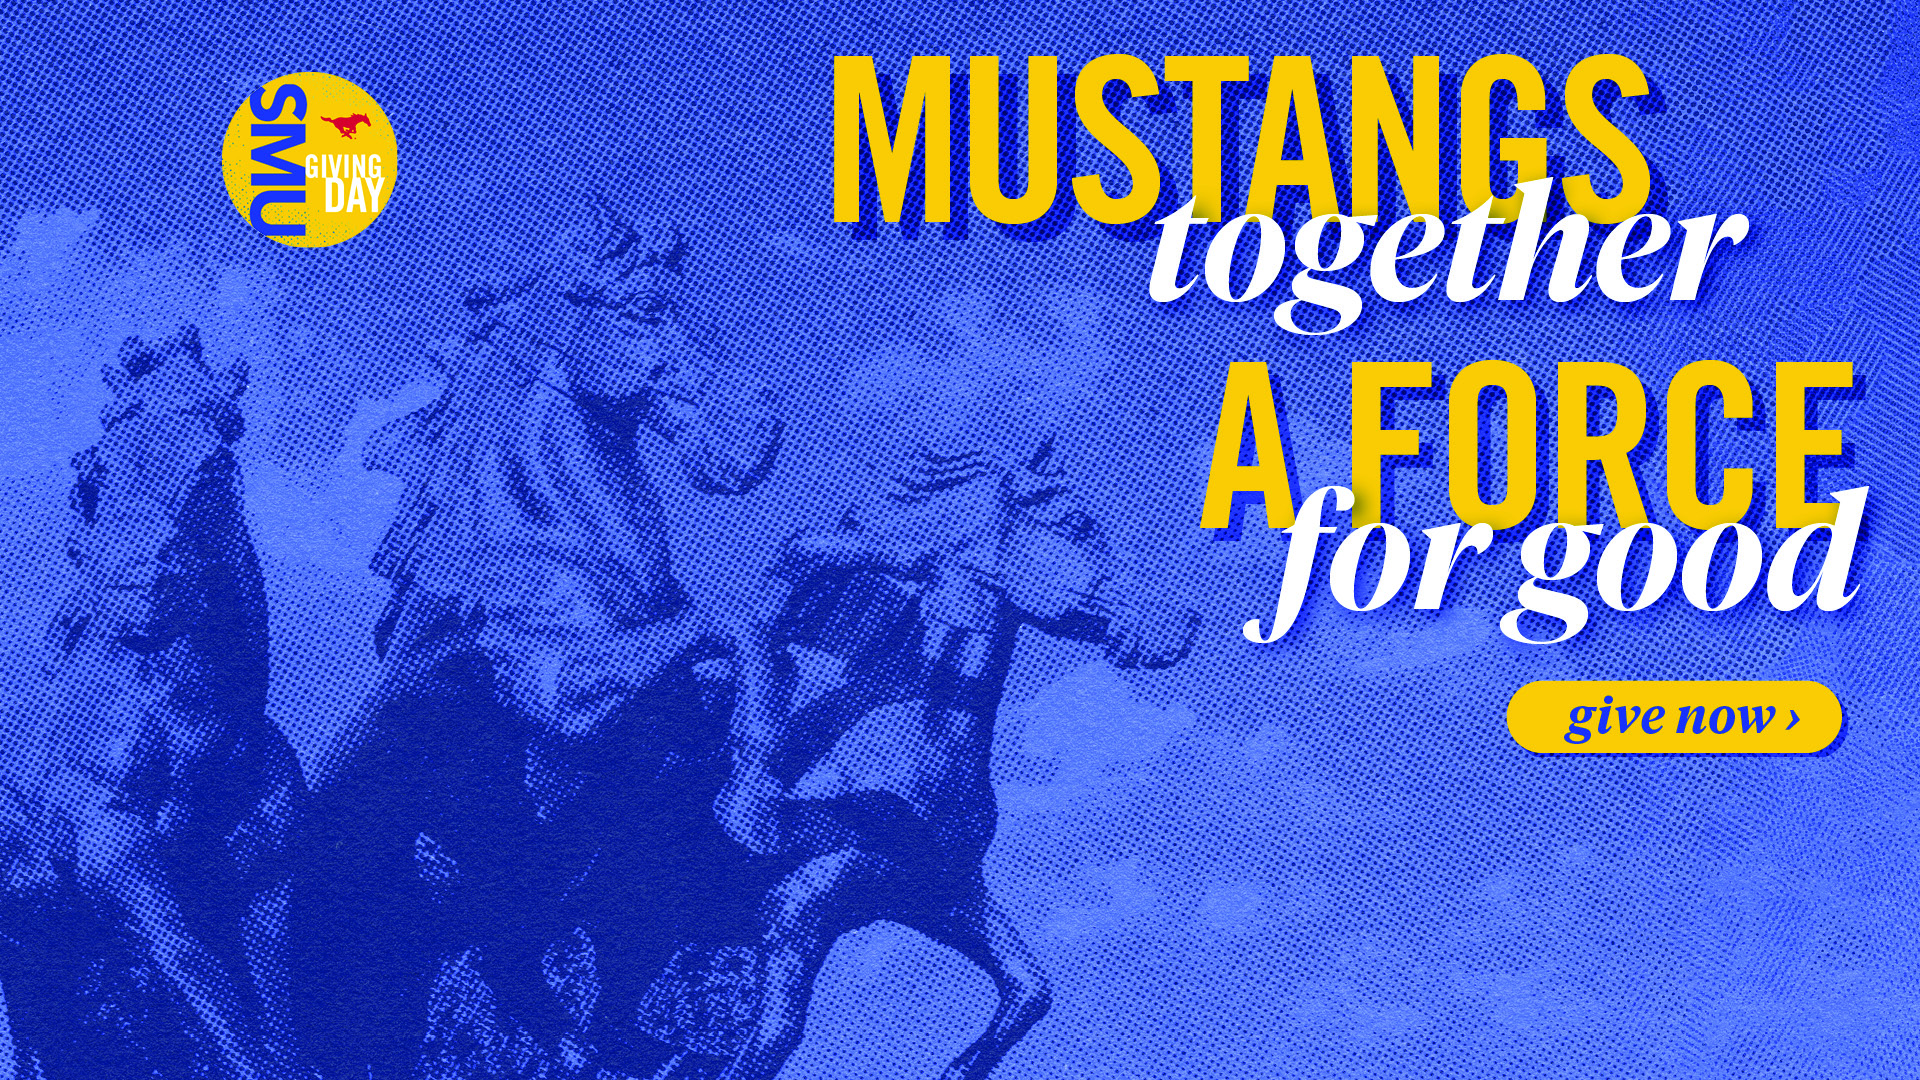 Mustangs together, a force for good.